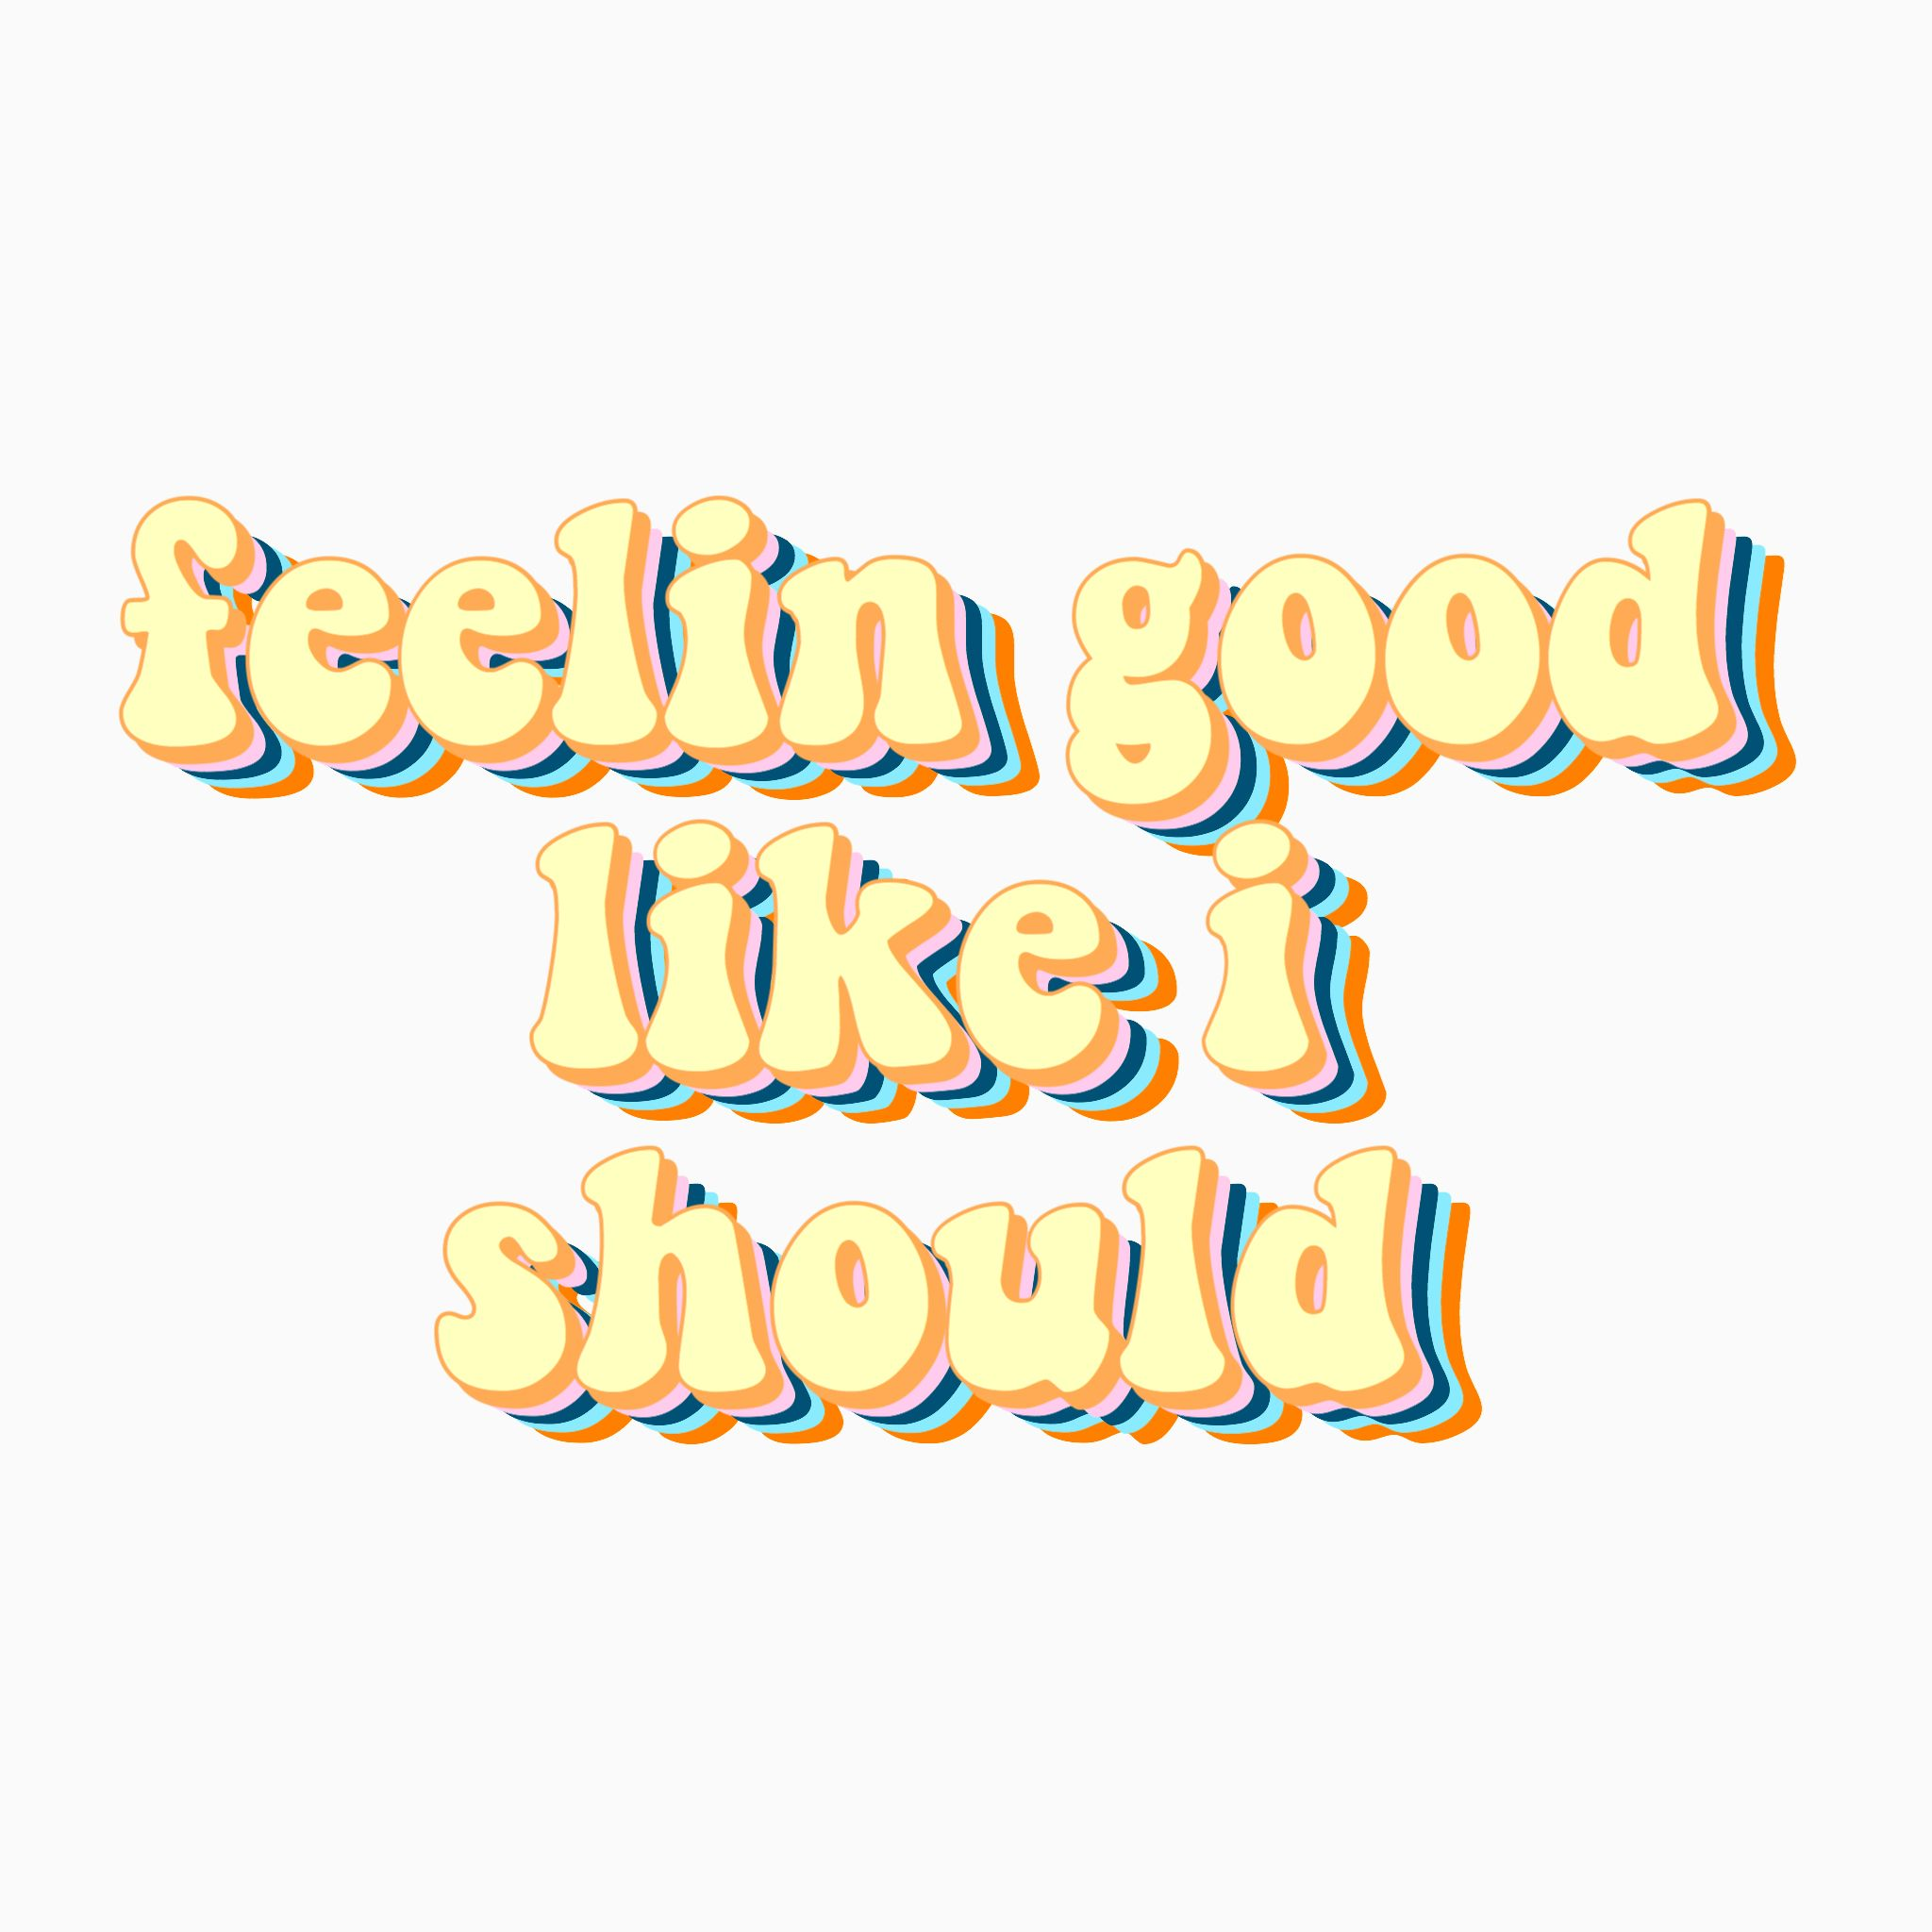 Feeling good Surfaces song sticker